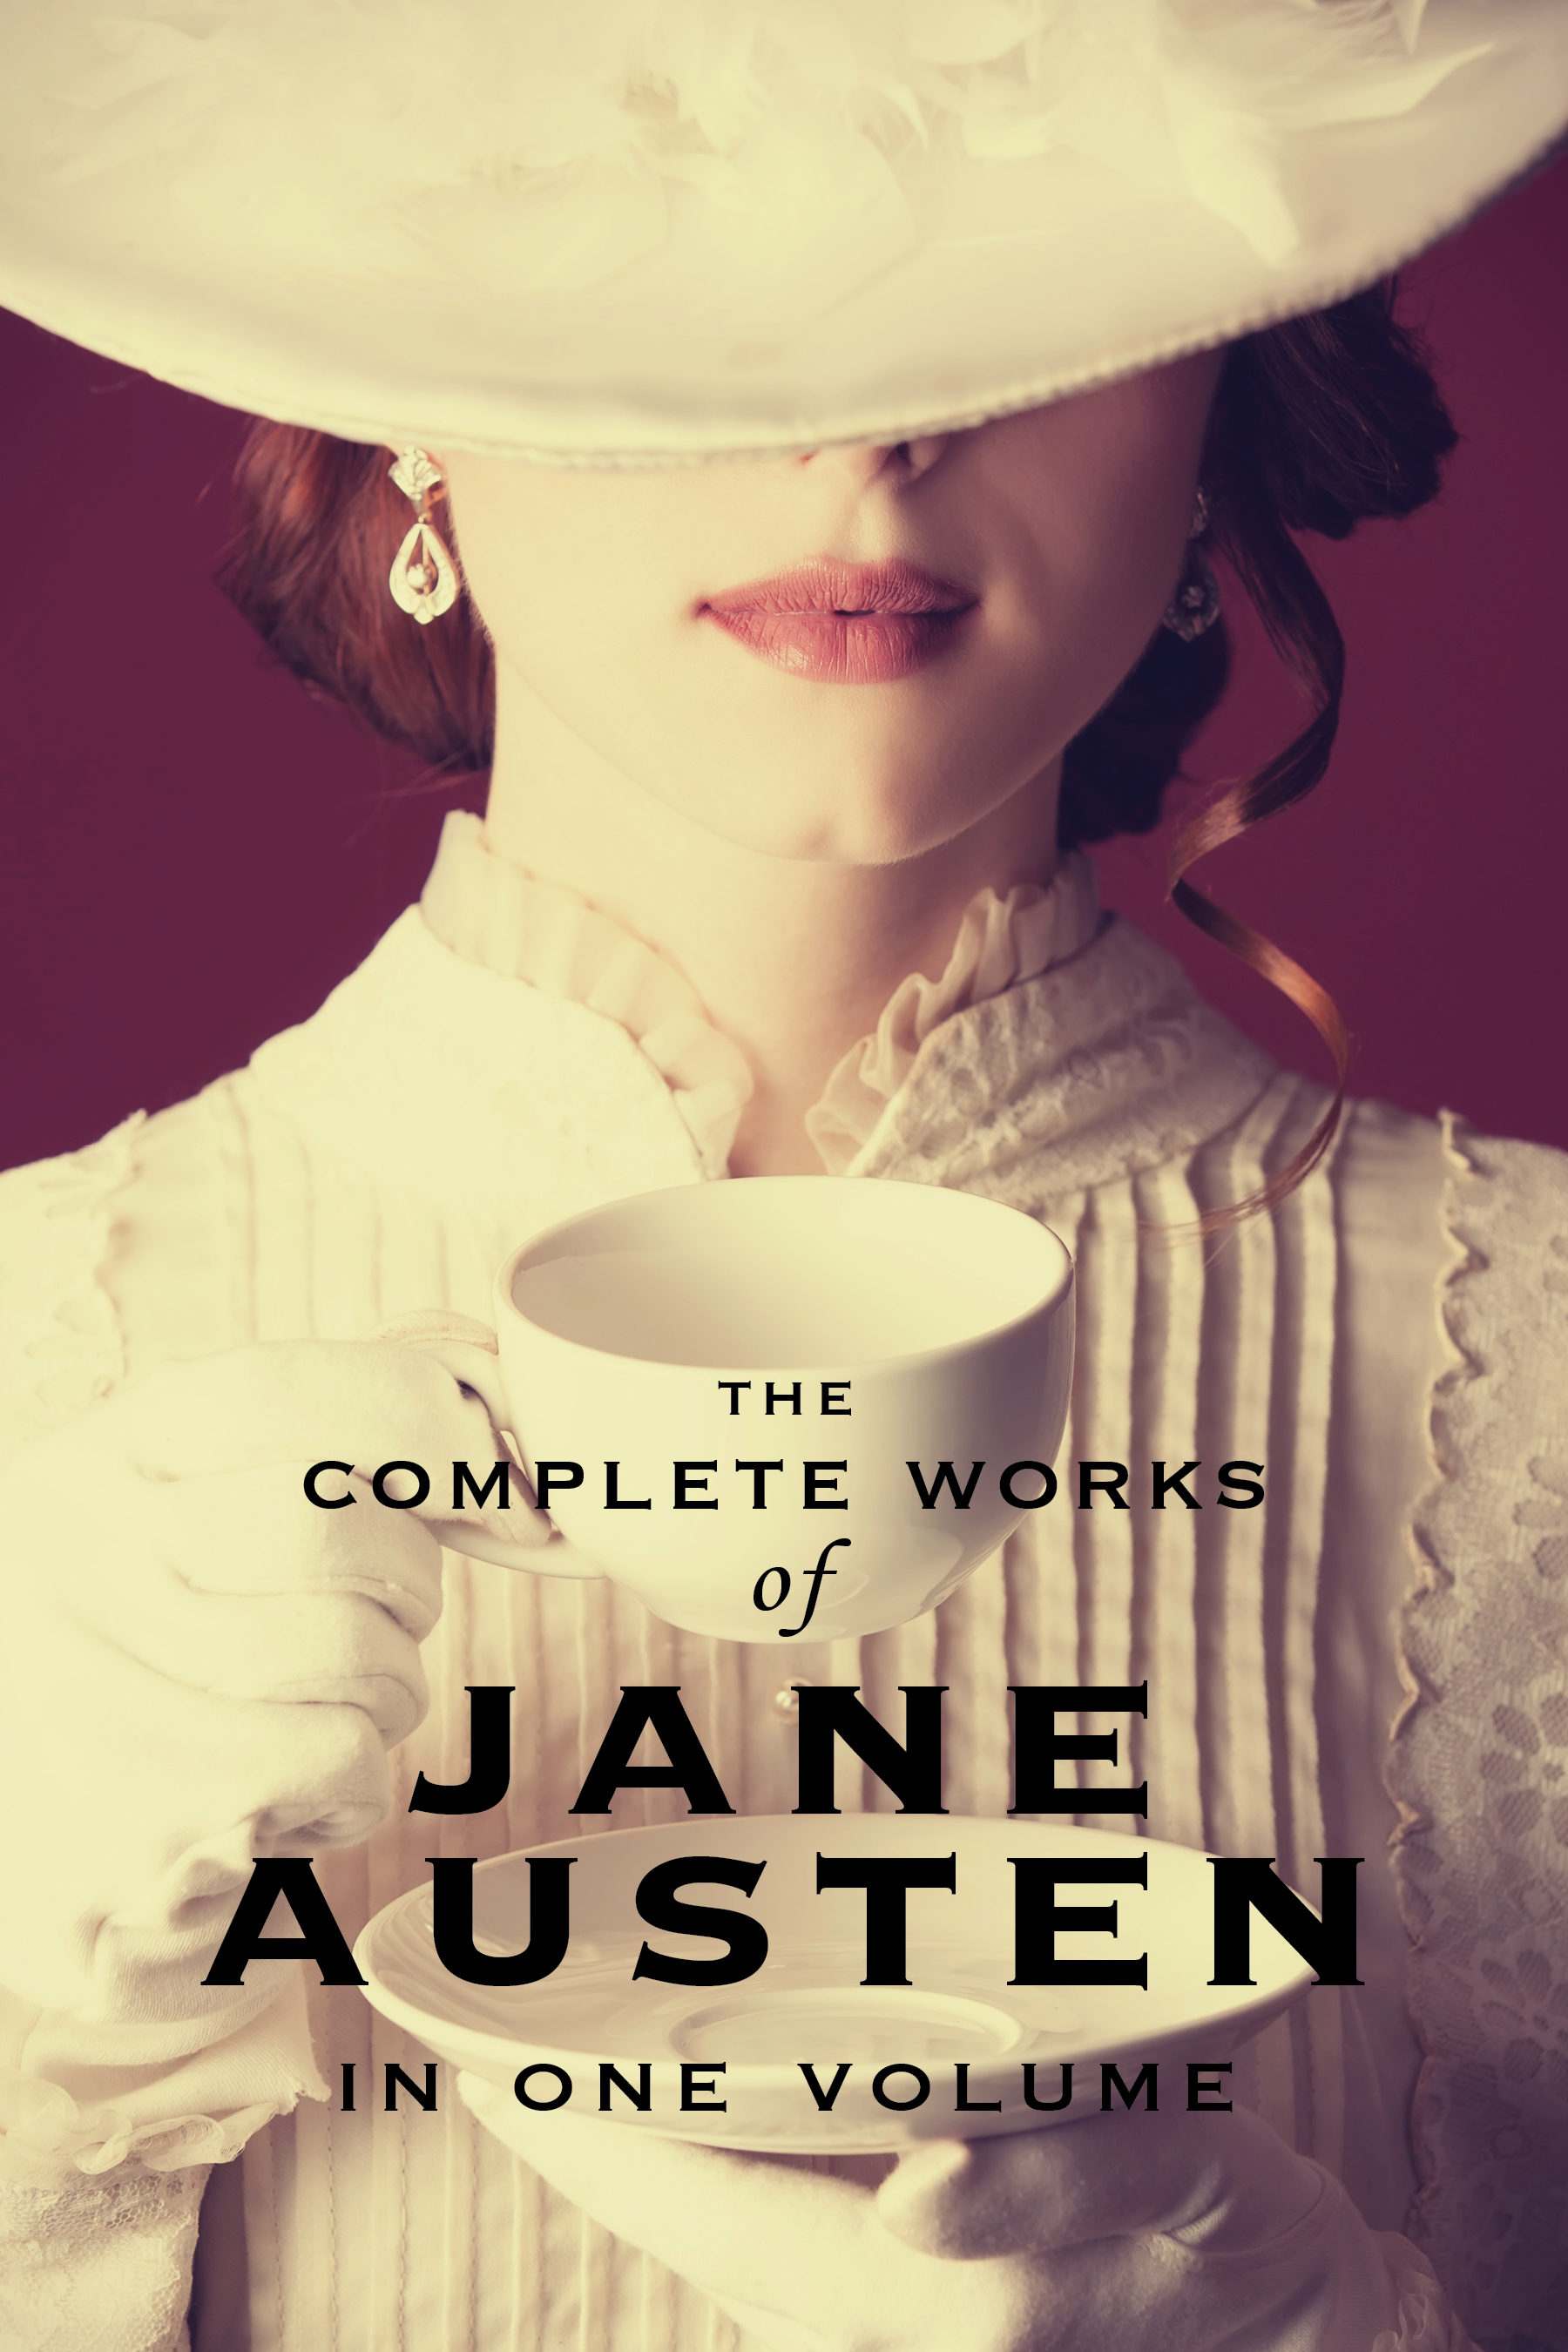 Vignette du livre The Complete Works of Jane Austen (In One Volume) Sense and Sensibility, Pride and Prejudice, Mansfield Park, Emma, Northanger Abbey, Persuasion, Lady Susan, The Watson's, Sandition, and the Complete Juvenilia